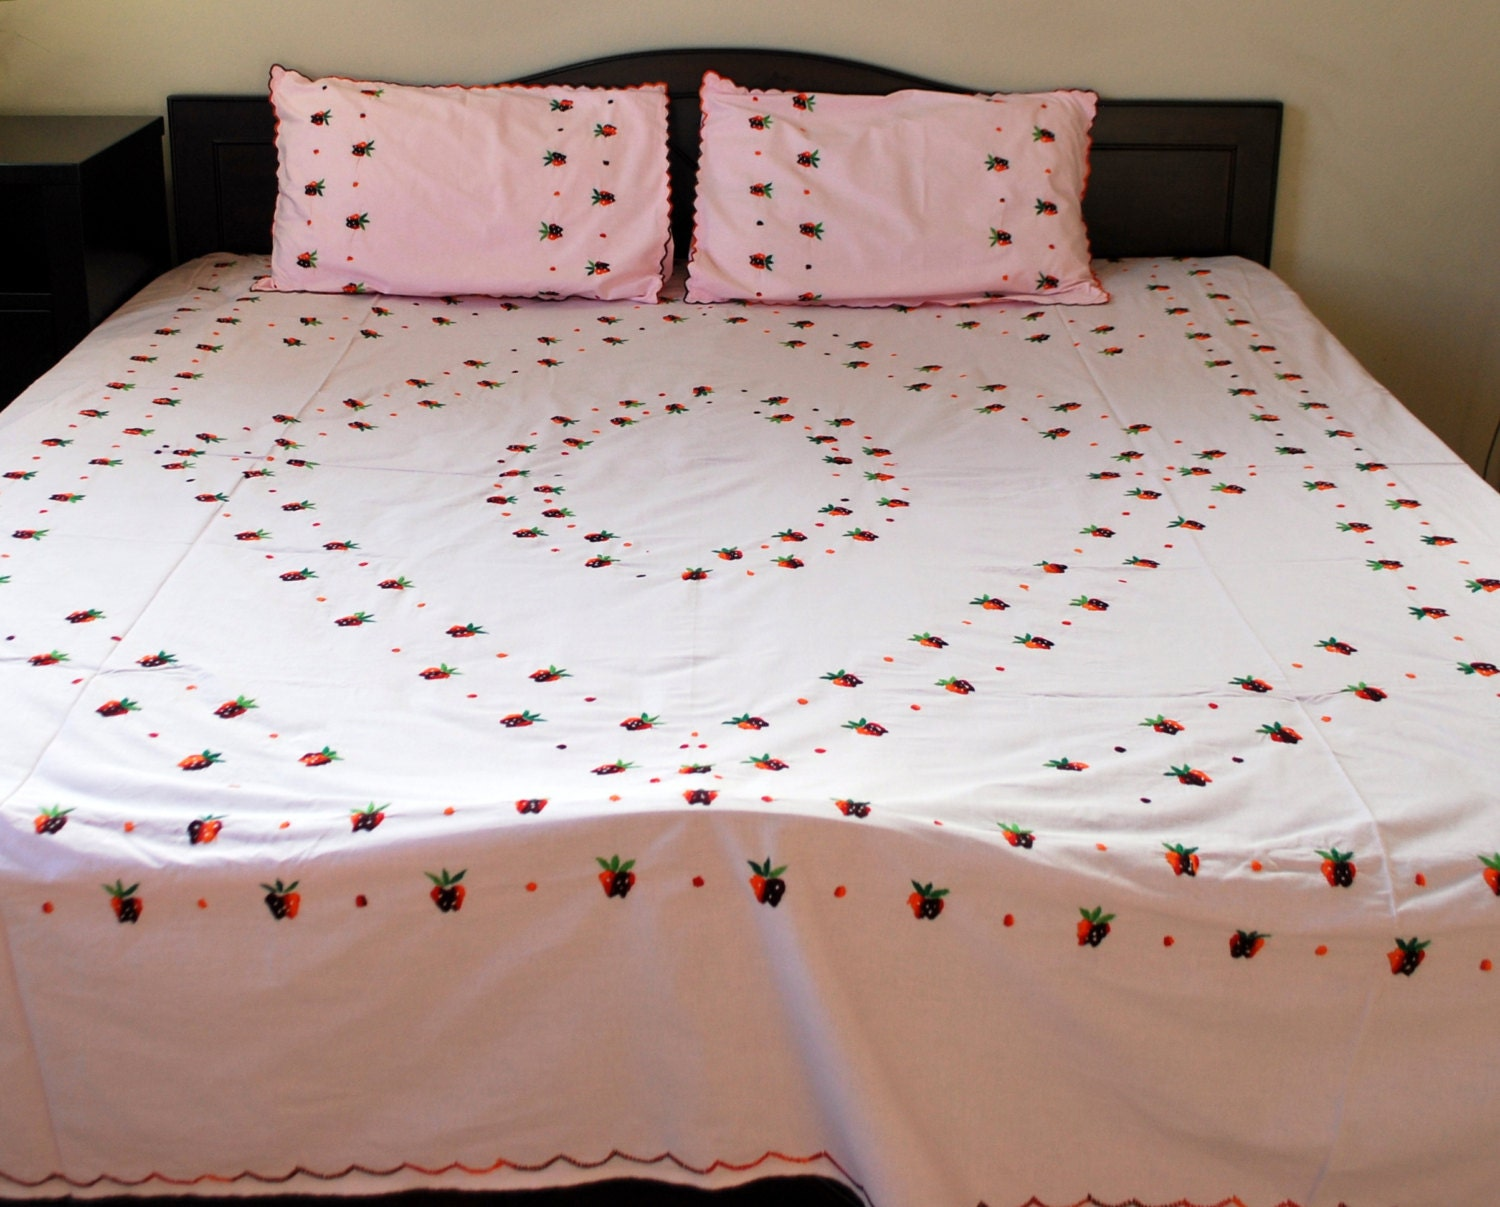 Pics for hand embroidery strawberry designs for bed sheets for Bed sheet design images